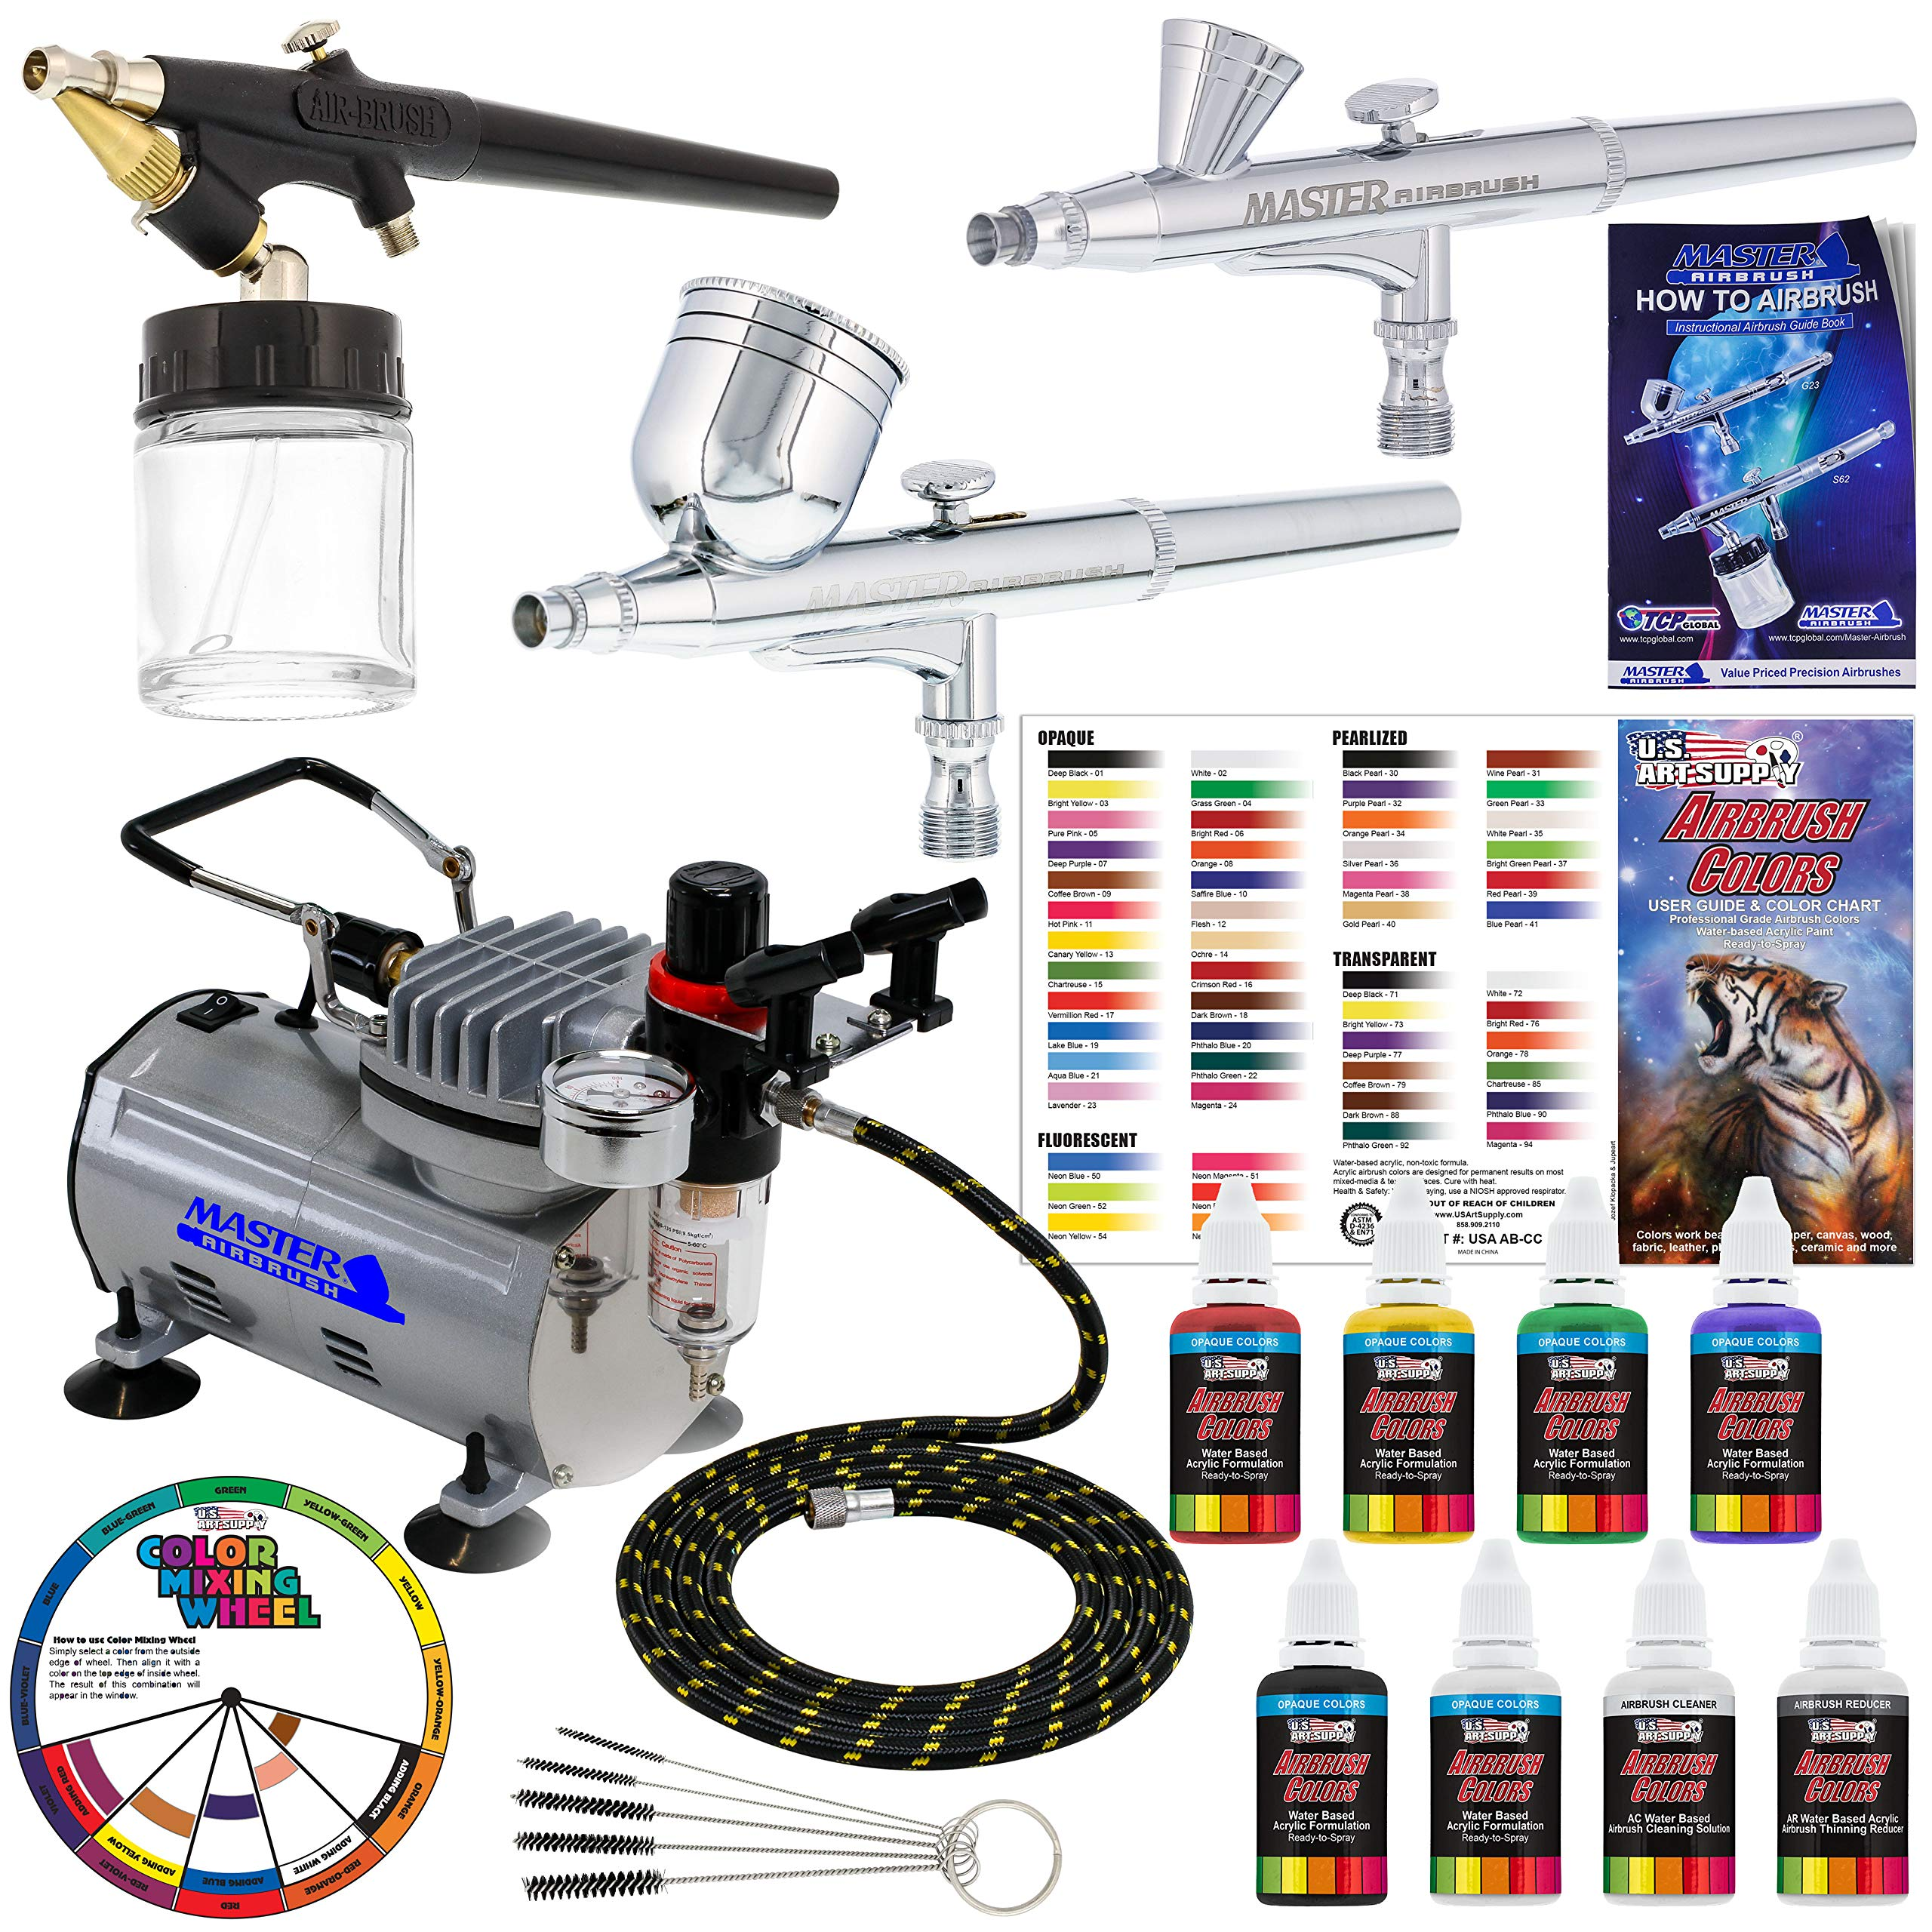 3 Airbrush Professional Master Airbrush Multi-Purpose Airbrushing System Kit with 6 Primary Opaque Colors Acrylic Paint Artist Set - G22, G25, E91 Gravity & Siphon Feed Airbrushes and Air Compressor by Master Airbrush